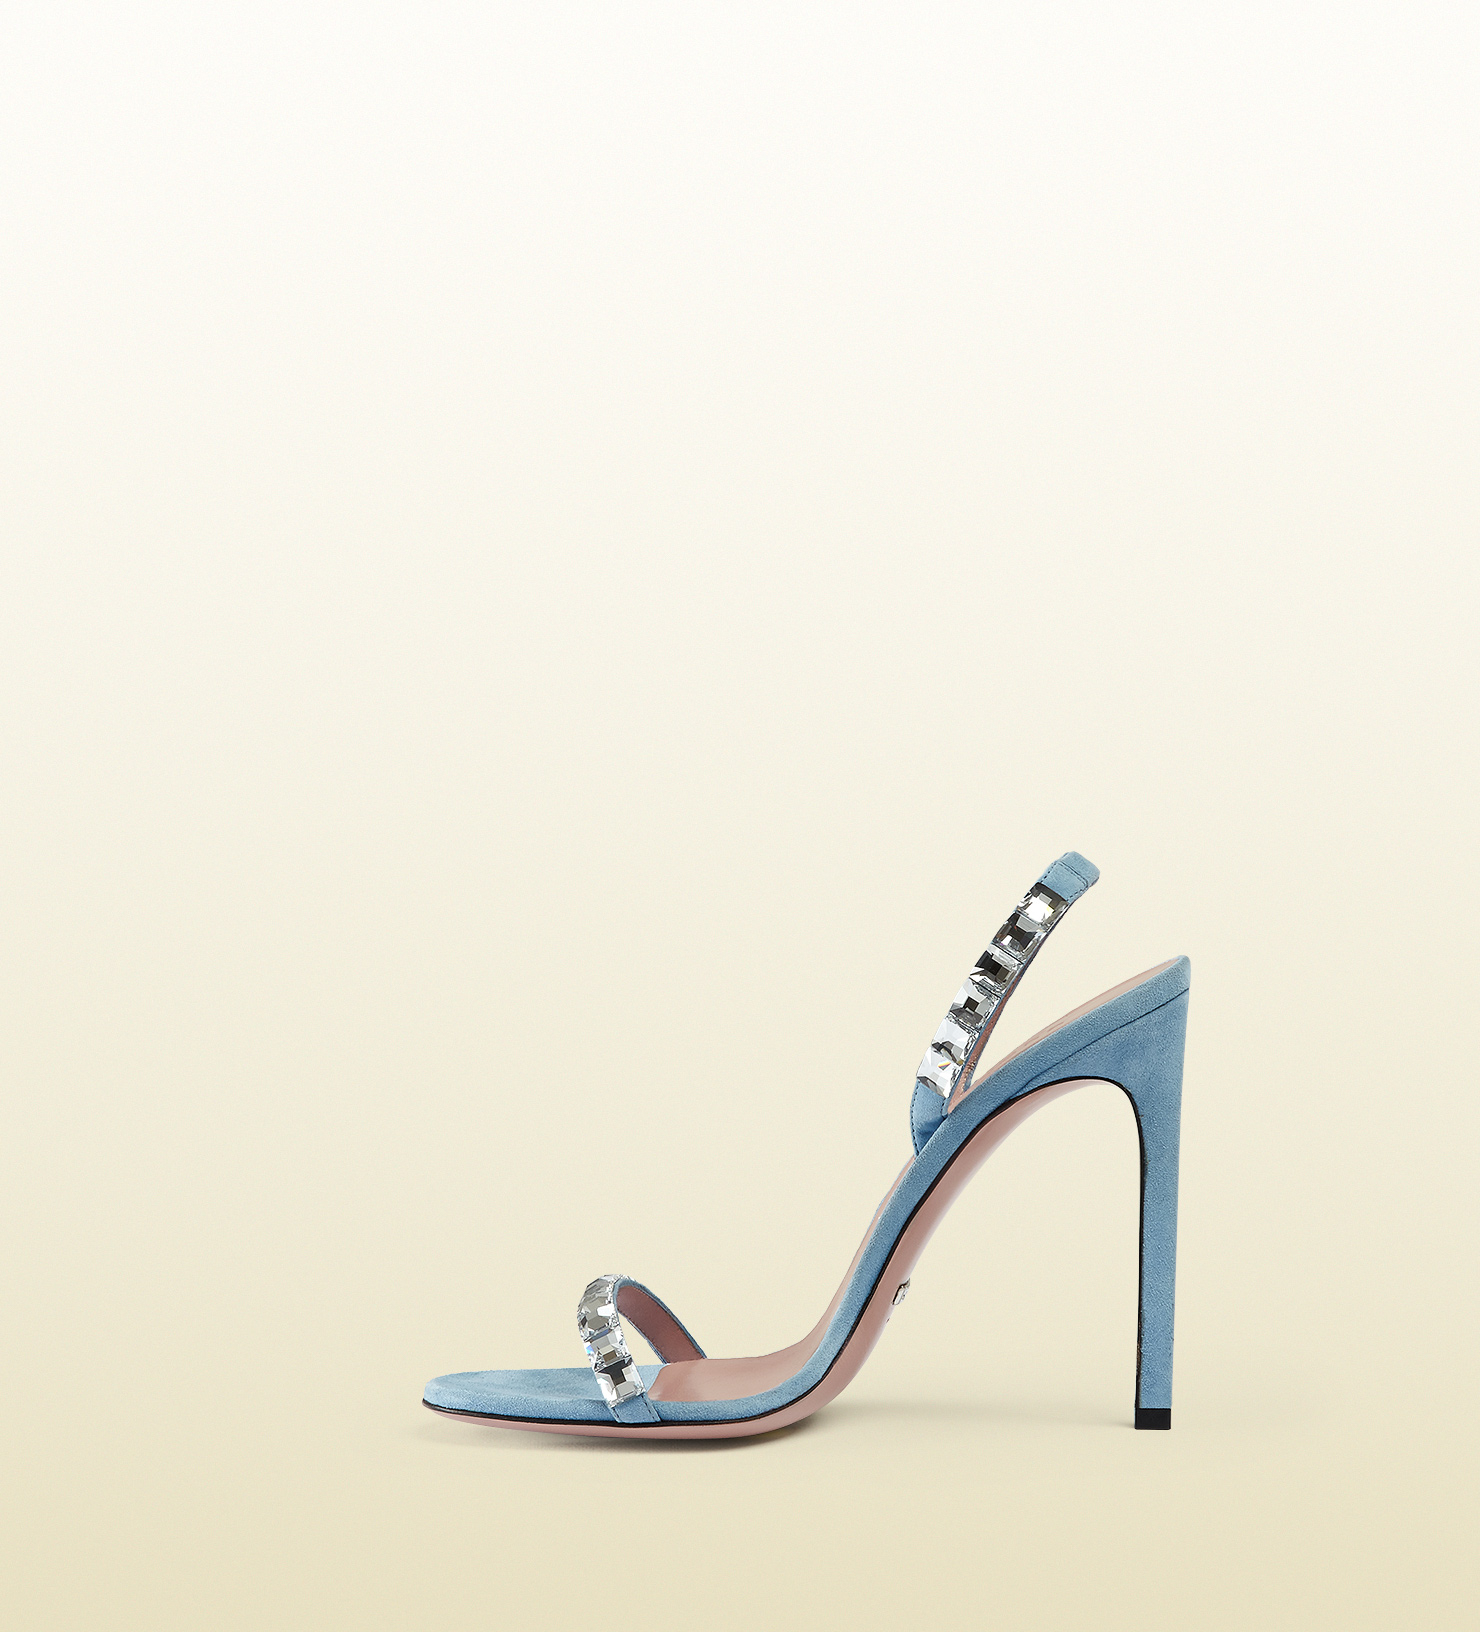 59abf5527a9 Lyst - Gucci Mallory Crystal Embellished Suede Sandals in Blue